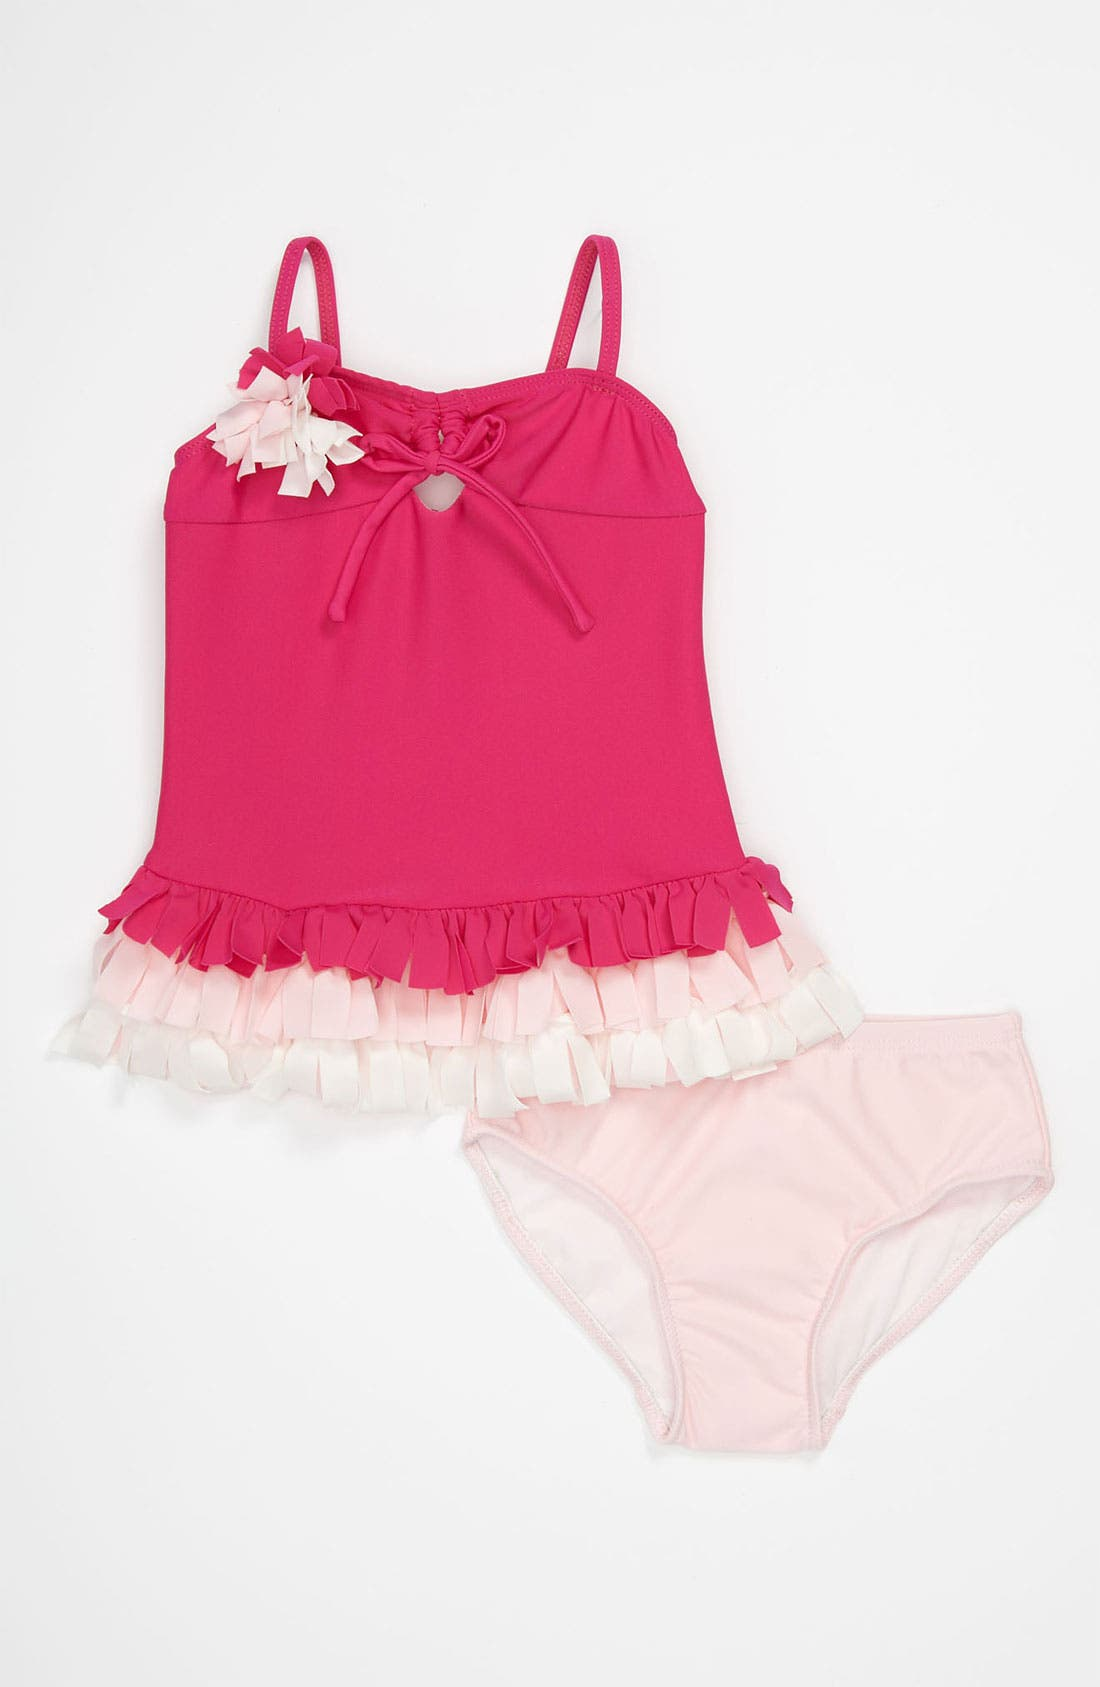 Alternate Image 1 Selected - Isobella & Chloe Two Piece Swimsuit (Baby)